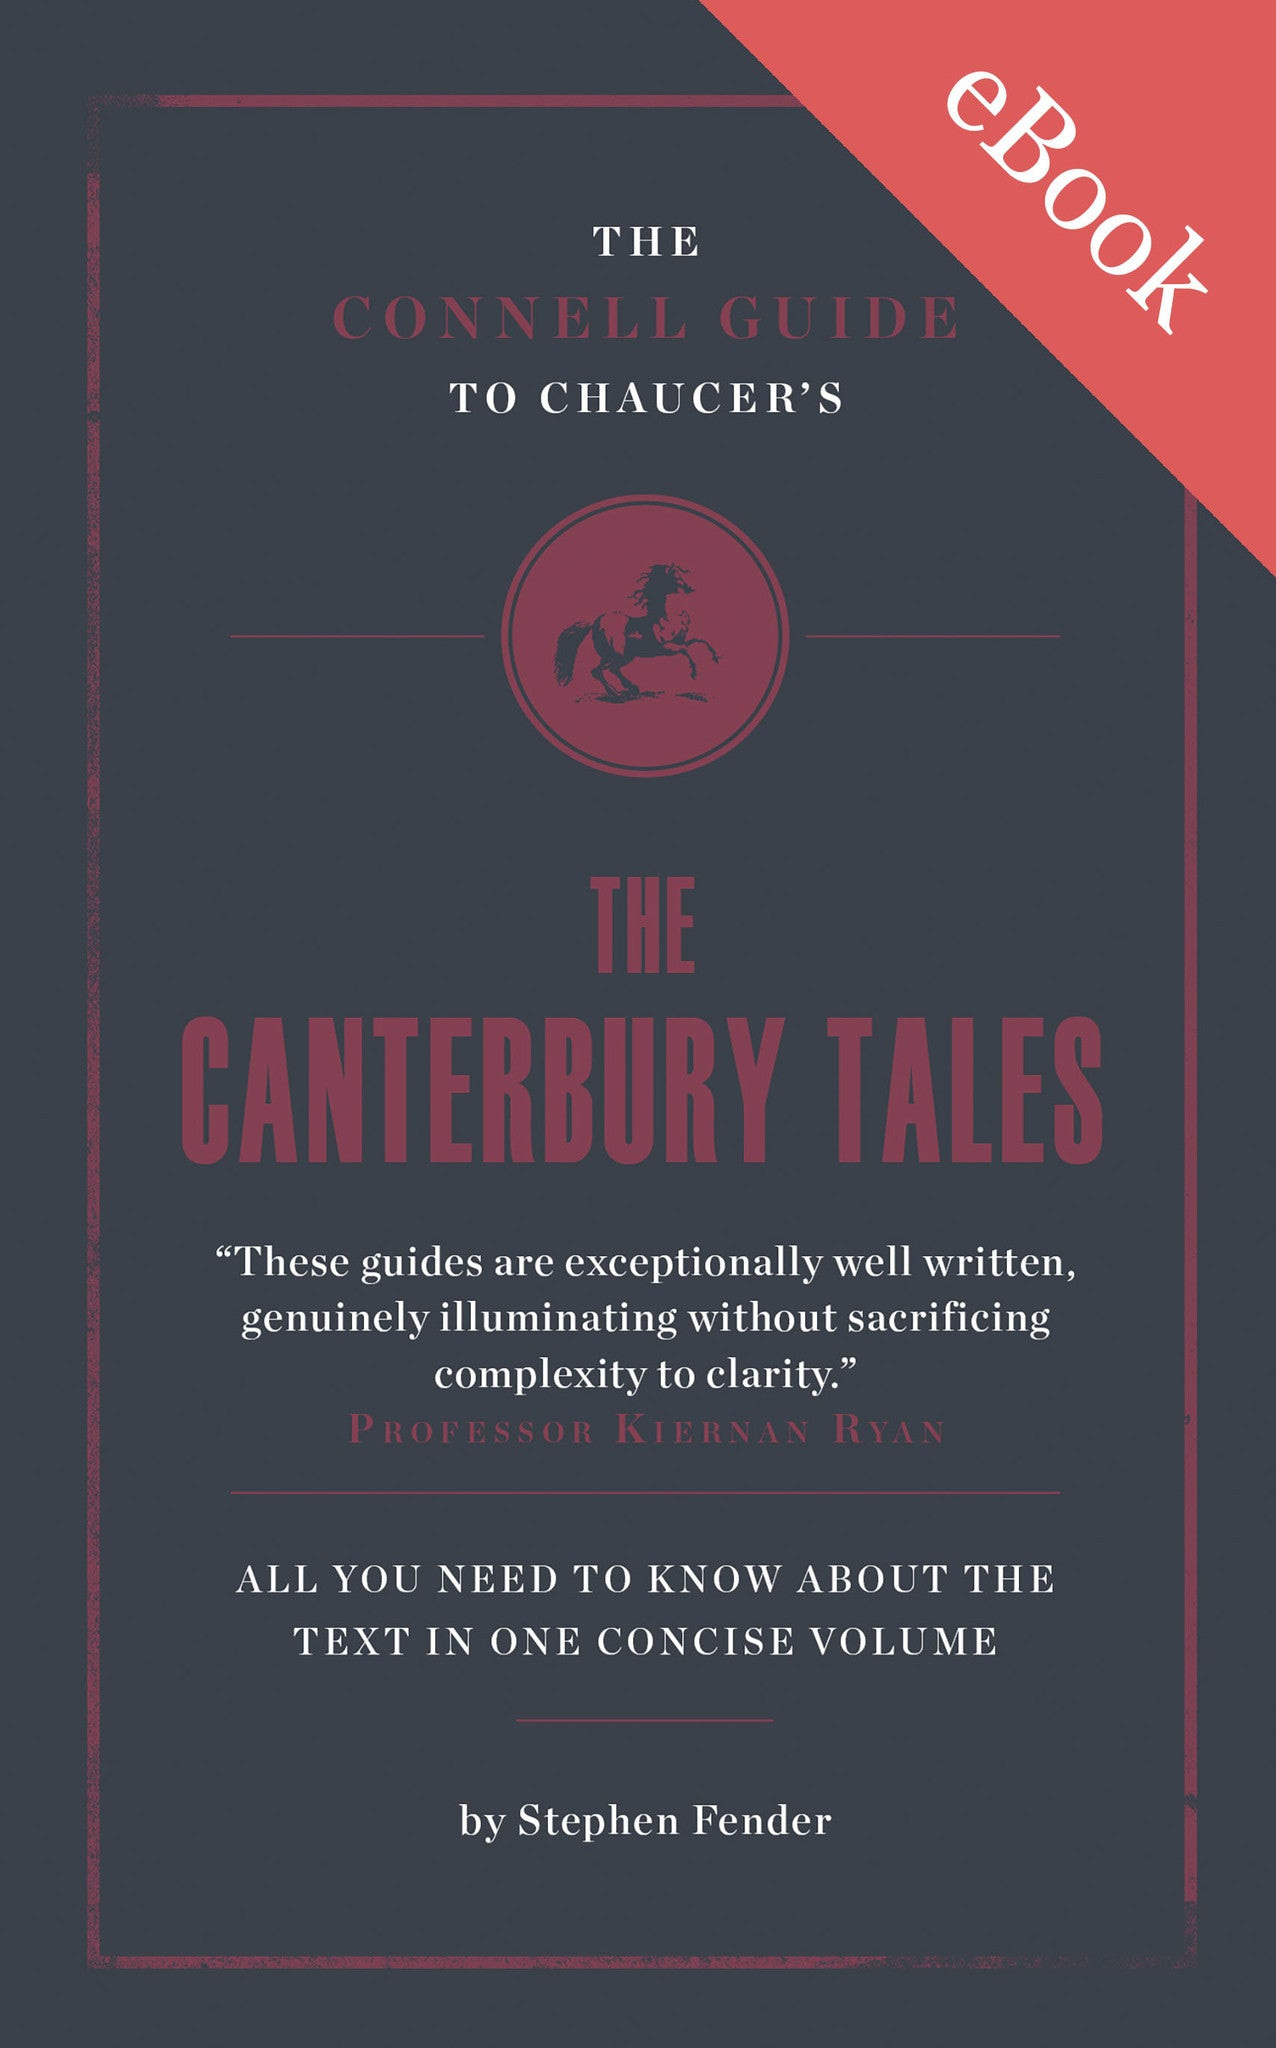 Ct study guide array geoffrey chaucer u0027s the canterbury tales study guide rh connellguides fandeluxe Images